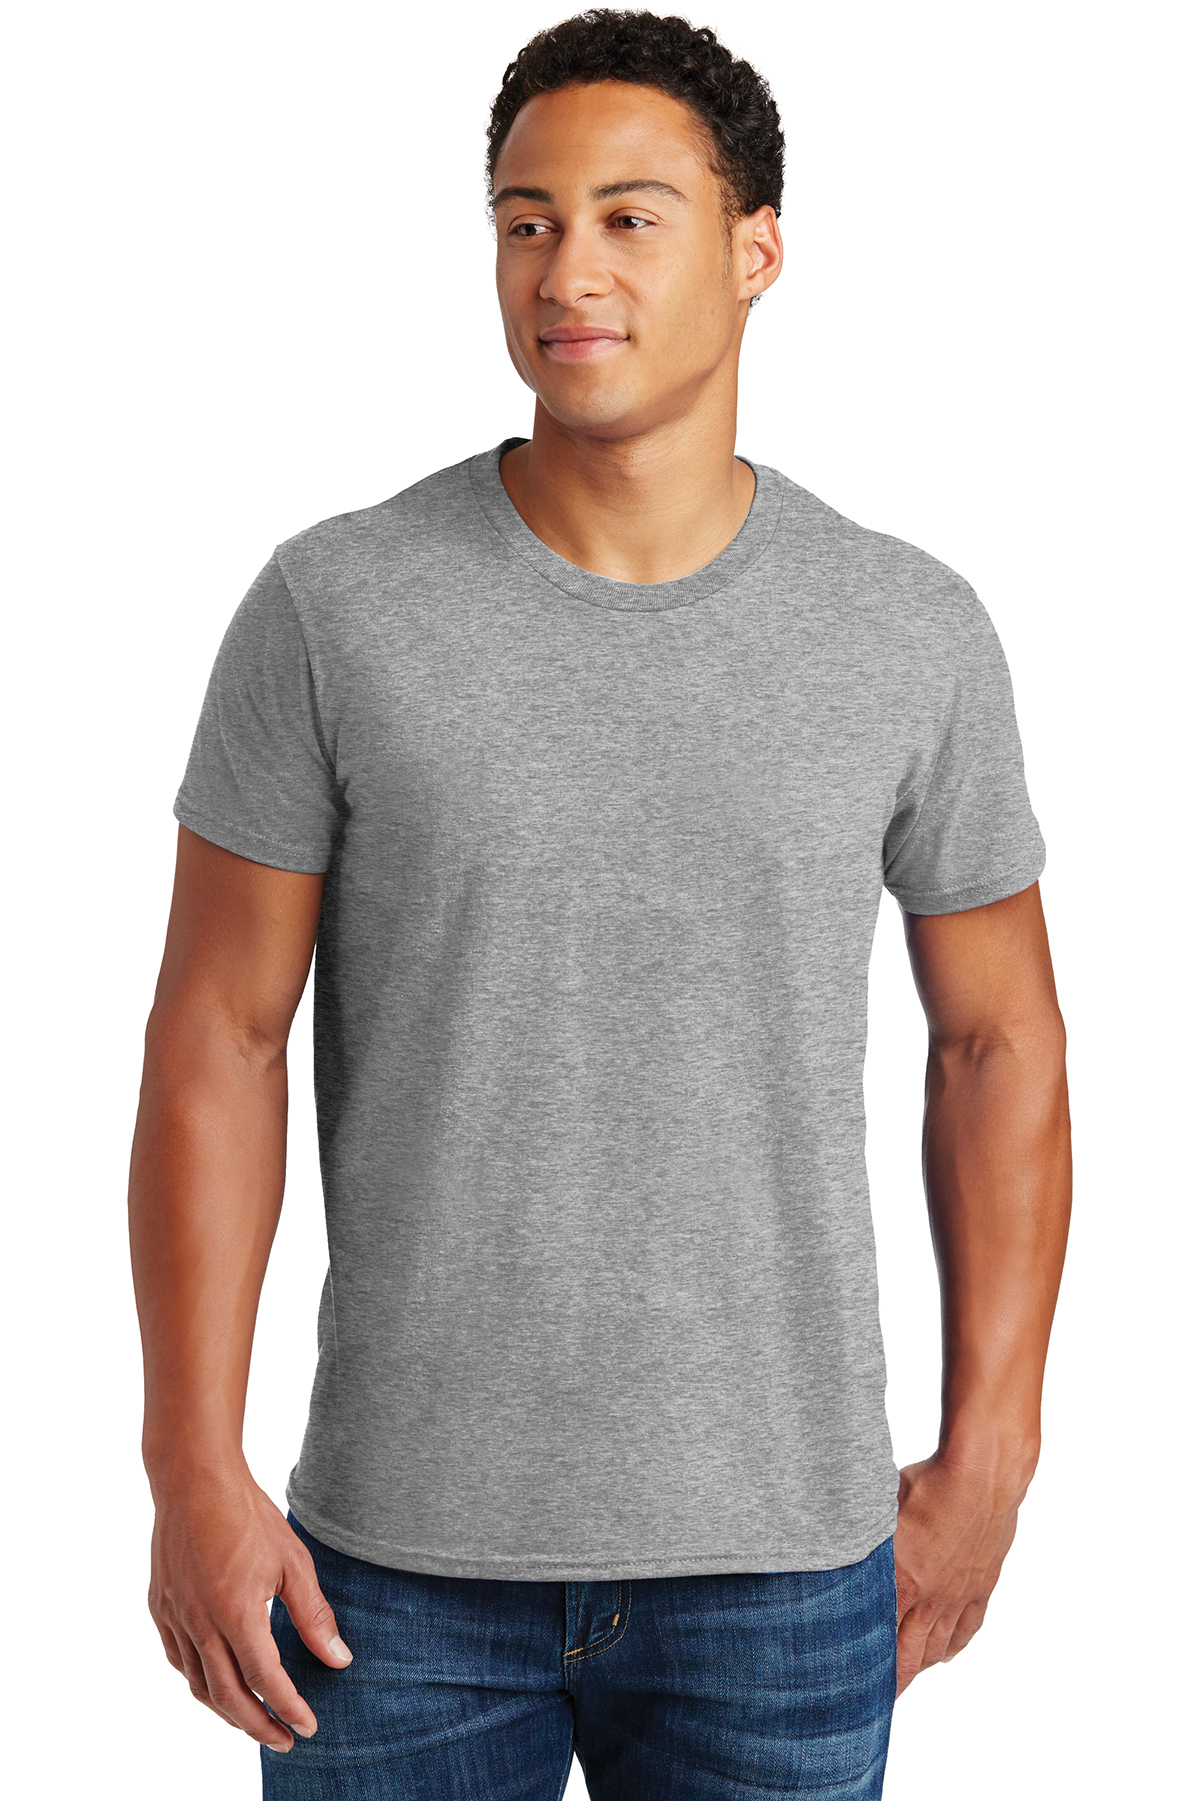 24daf671 Hanes® - Nano-T® Cotton T-Shirt | 100% Cotton | T-Shirts | SanMar